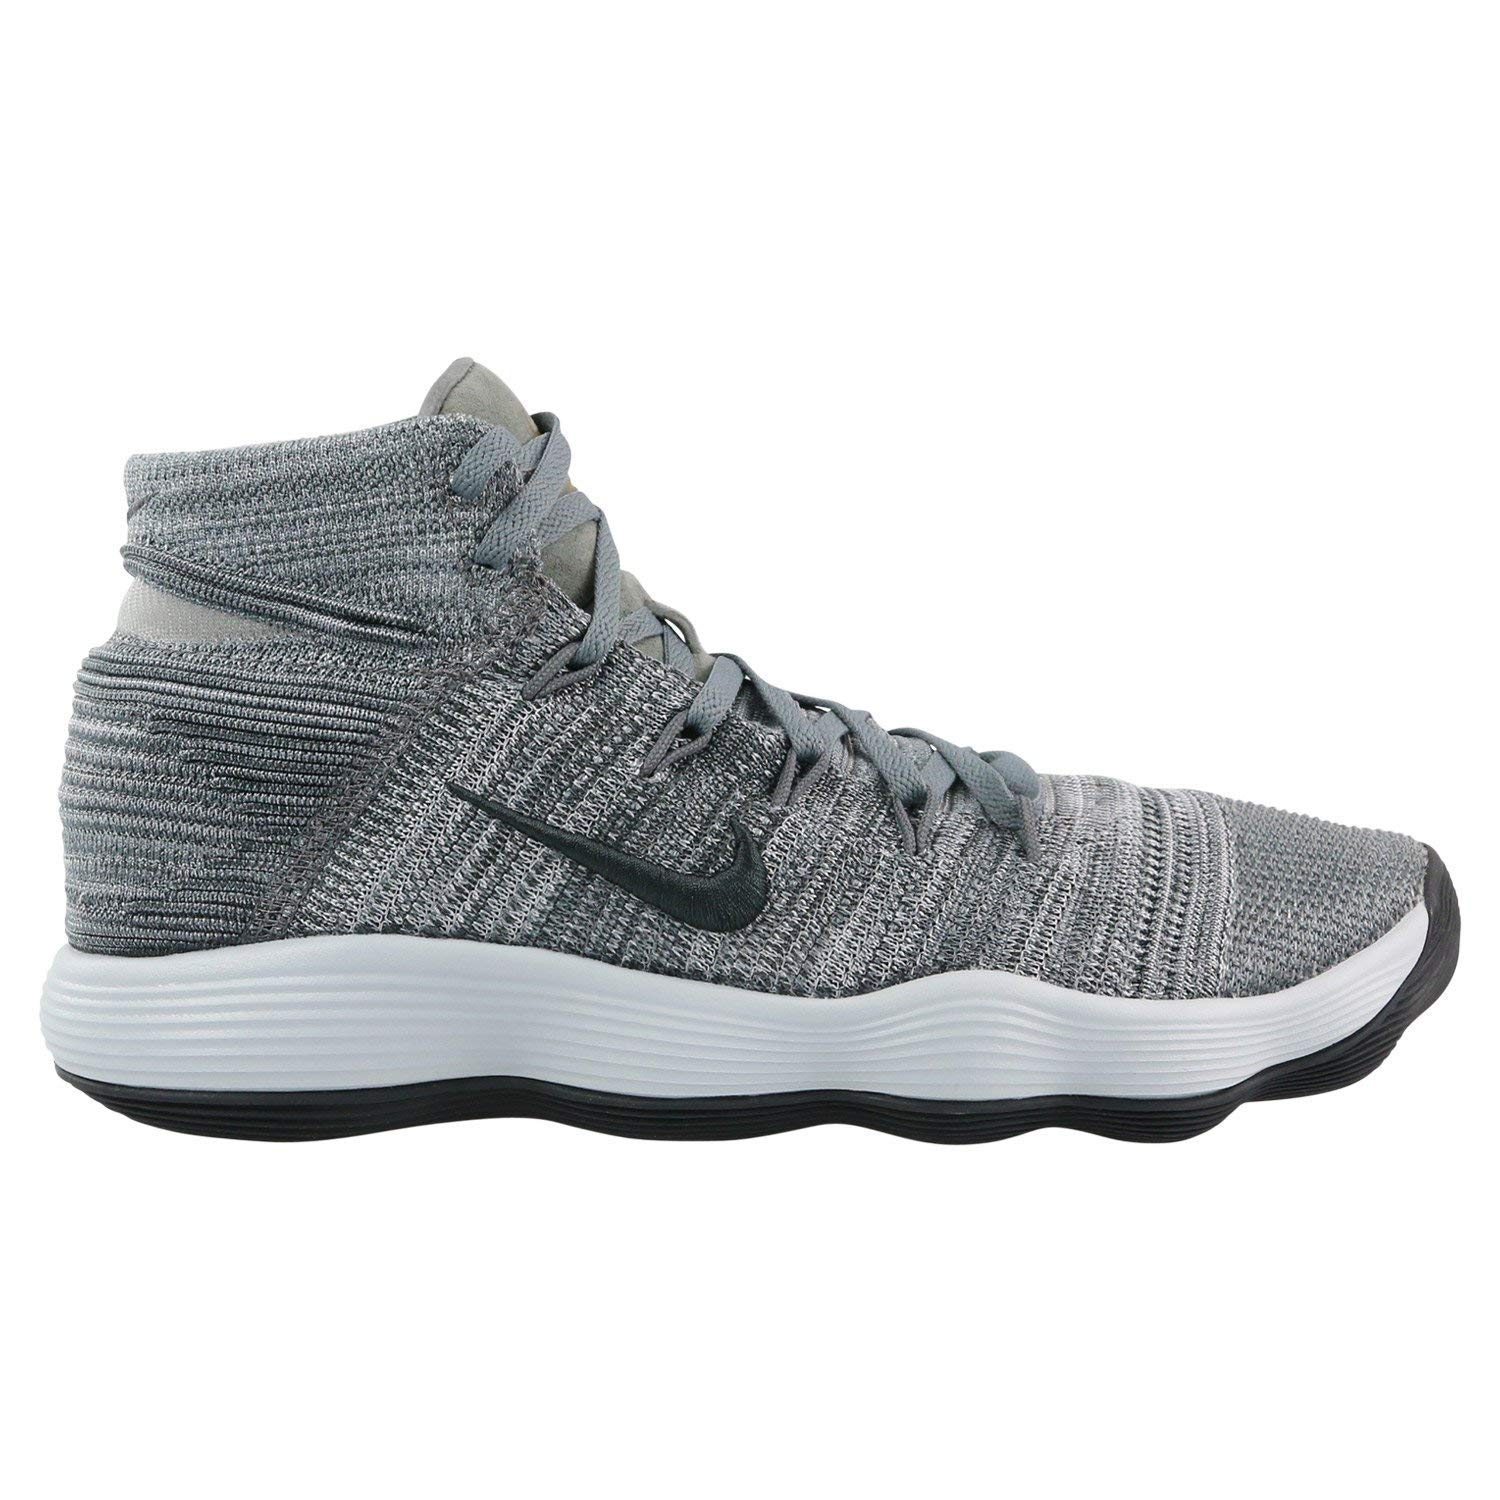 timeless design 578ba 78497 Amazon.com  Nike Hyperdunk 2017 Flyknit basketball shoes mens cool grey anthracite  NEW 917726-007 - 11  Clothing